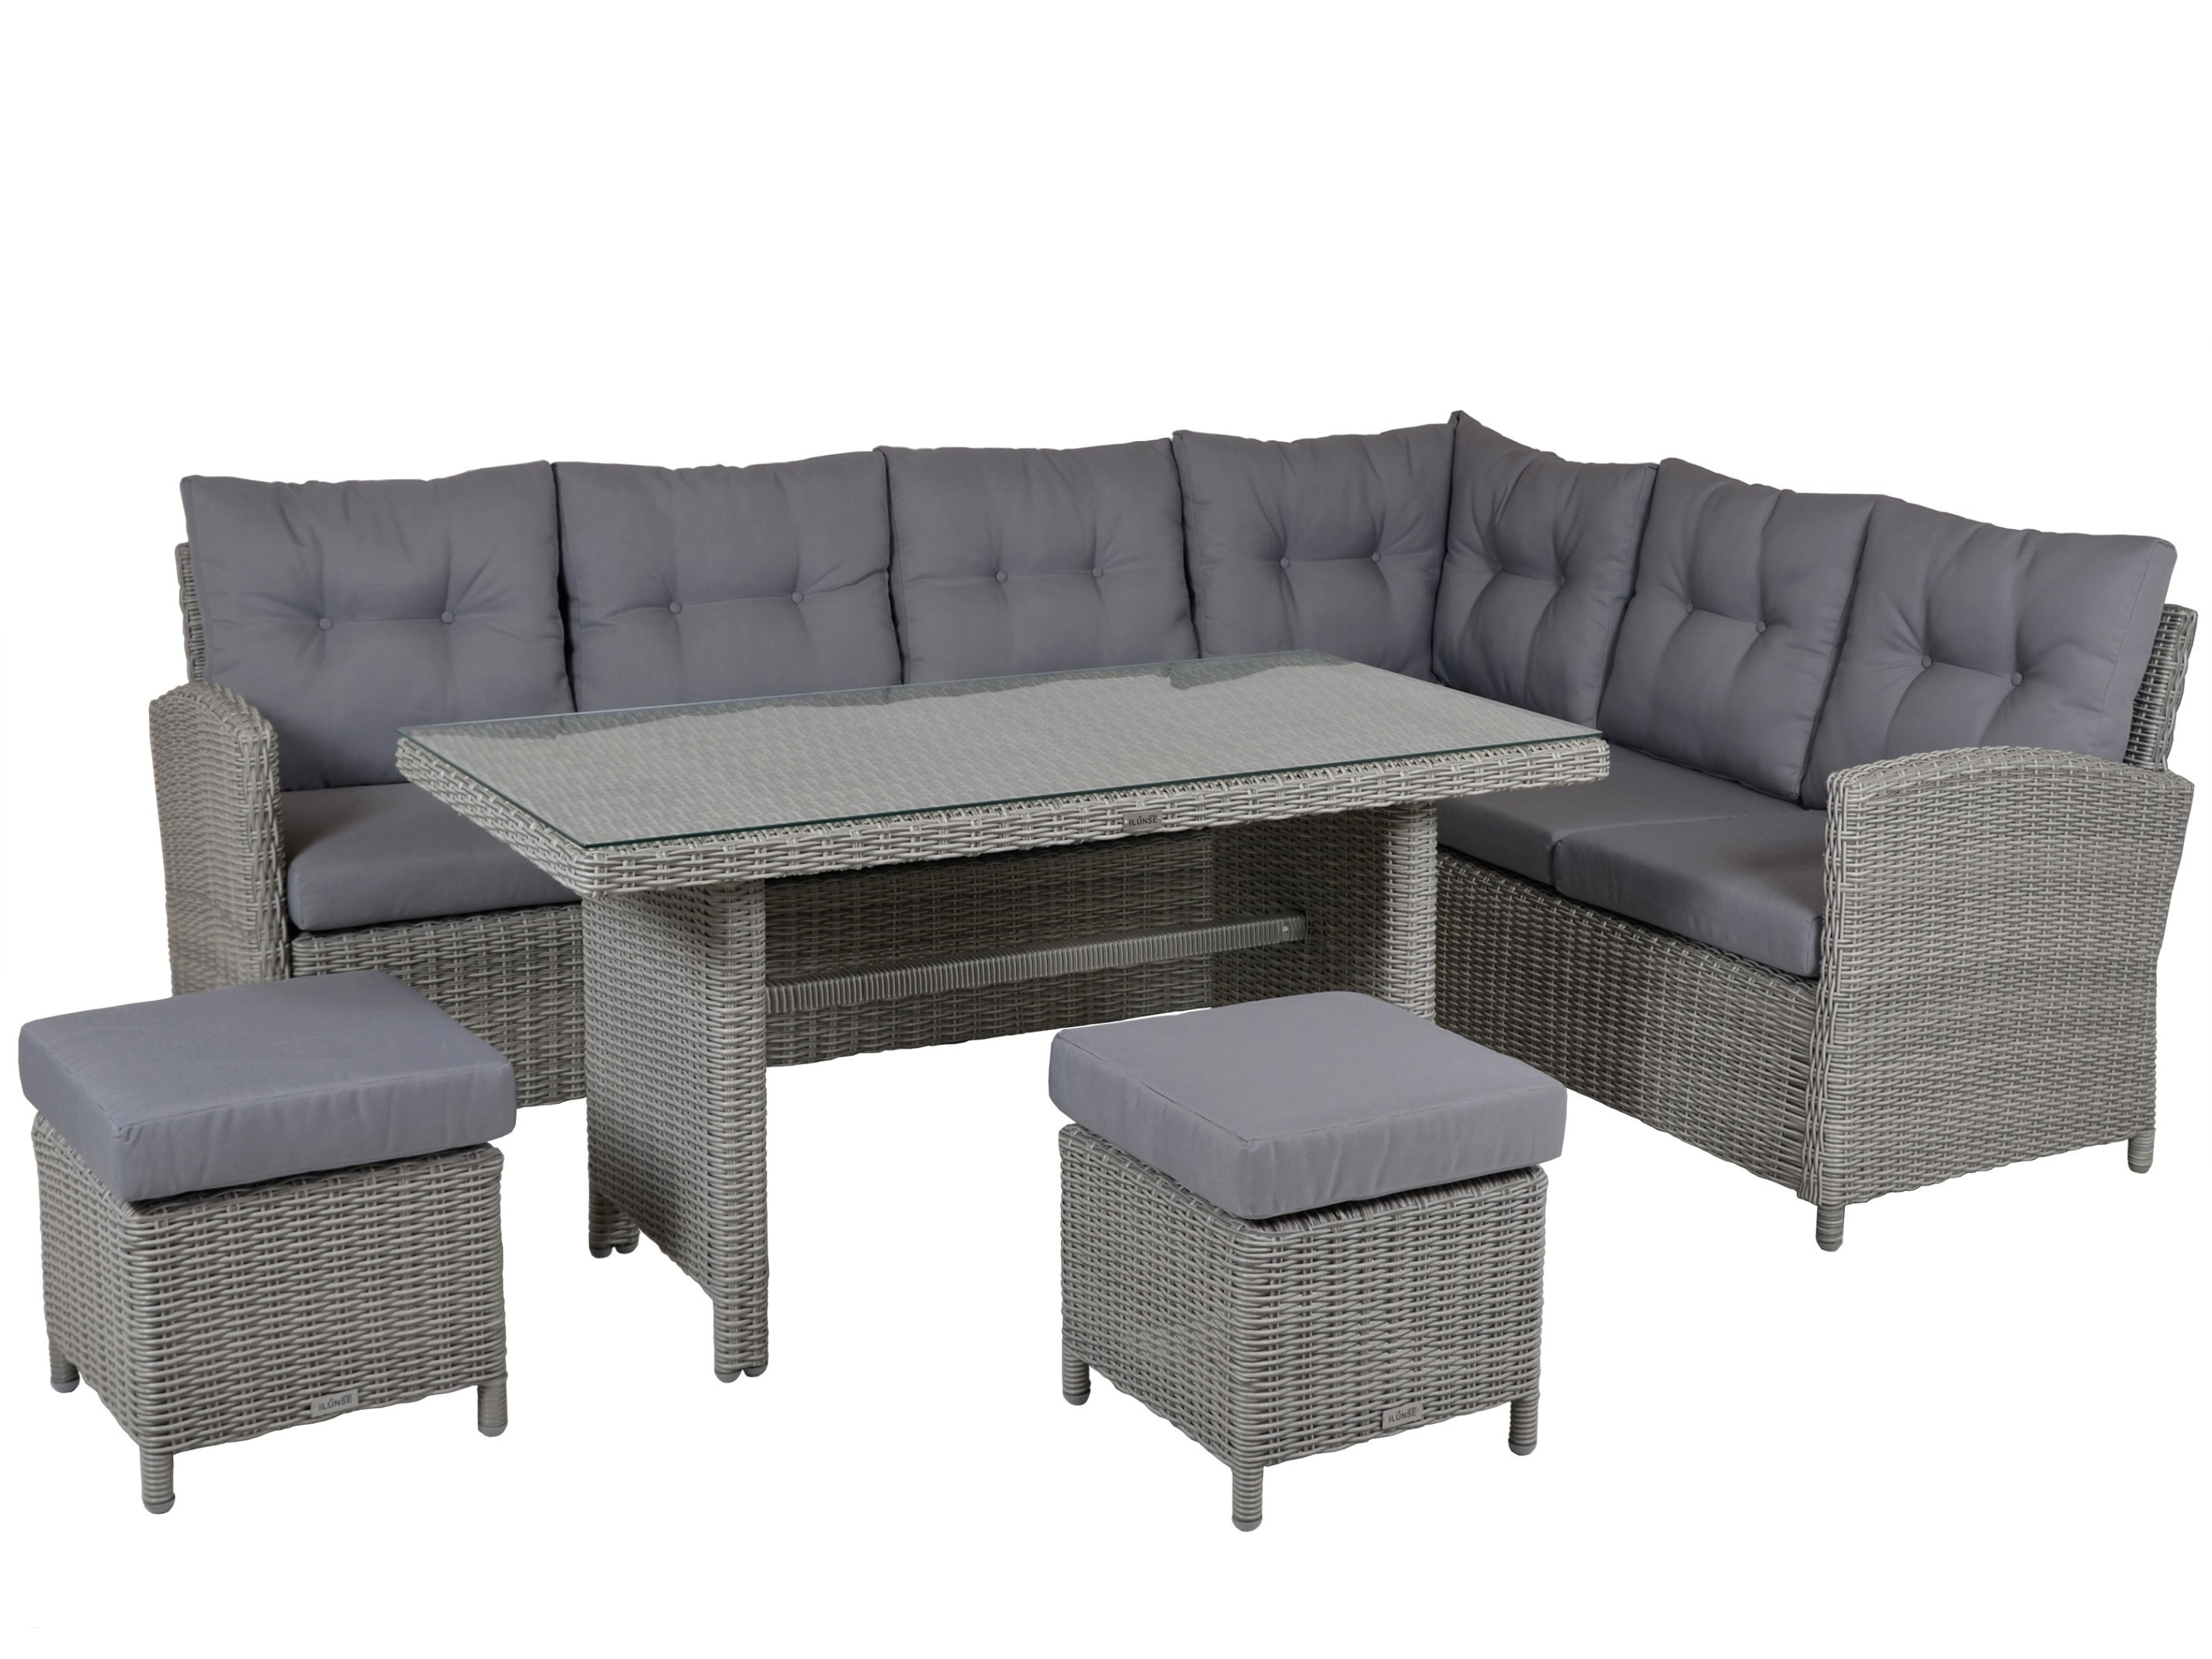 Lazyboy Outdoor Furniture